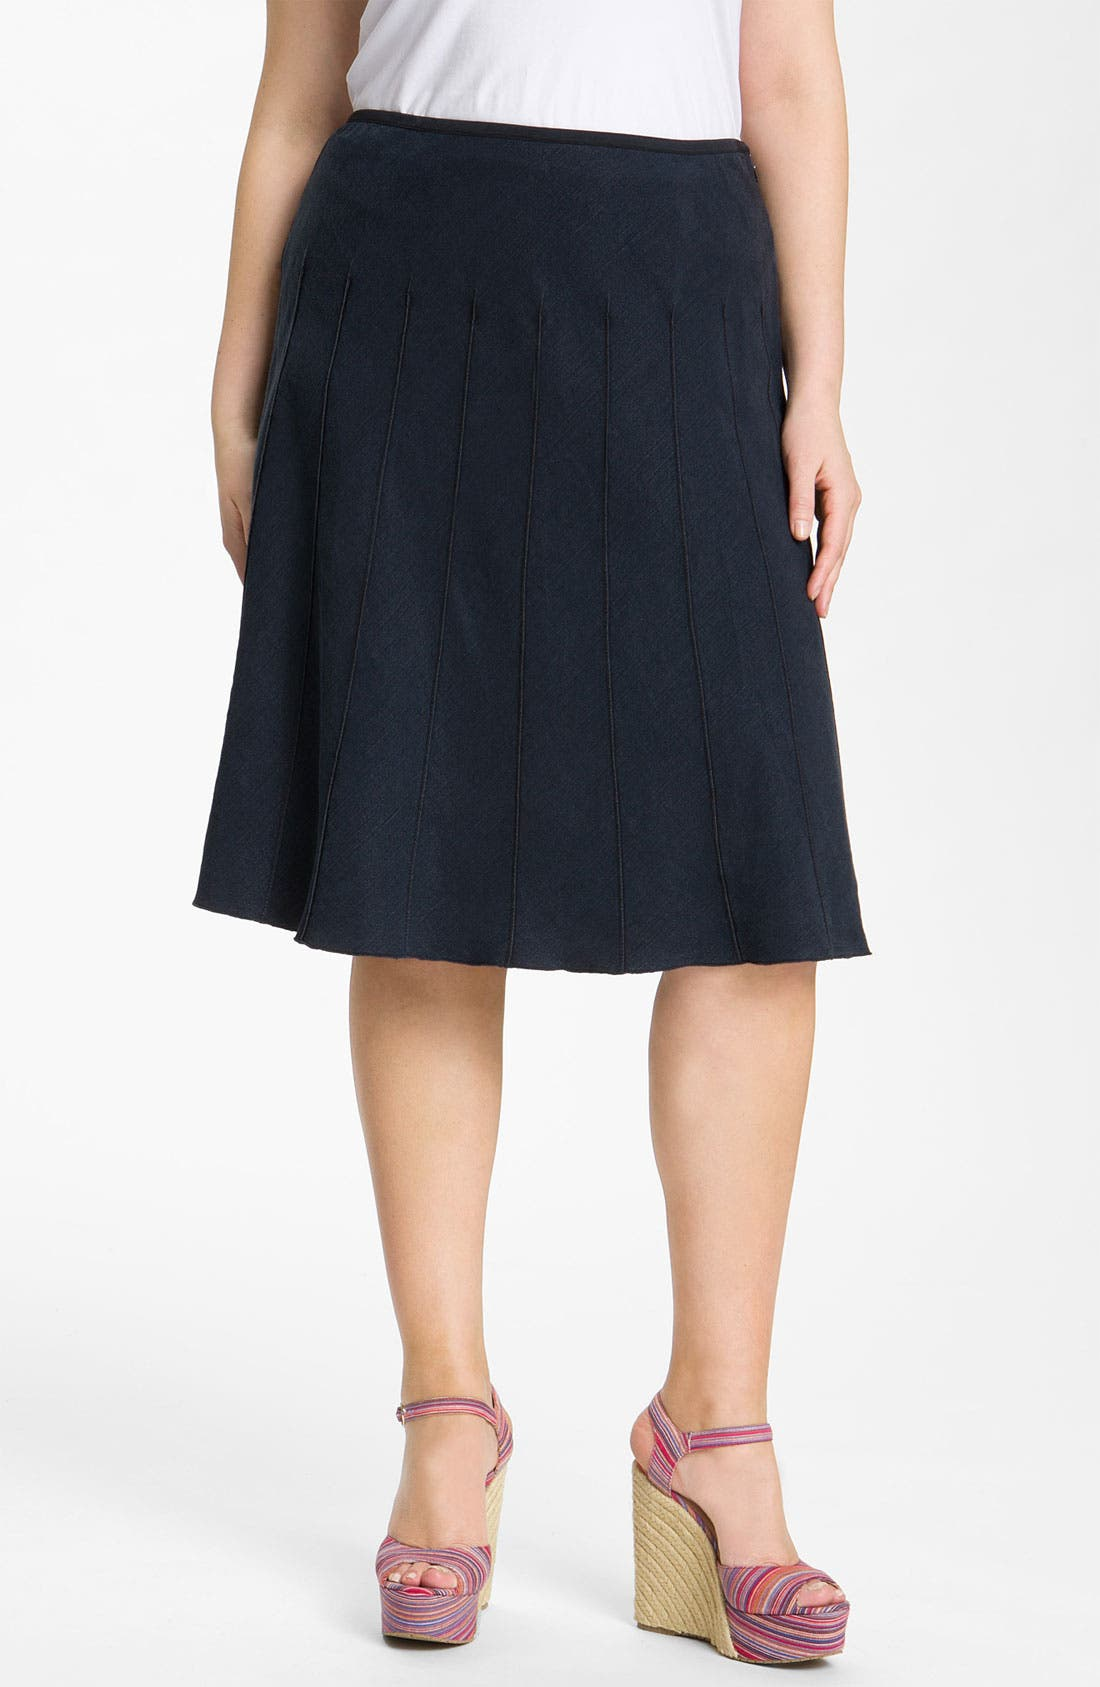 Alternate Image 1 Selected - Nic + Zoe 'Flirt' Seamed Skirt (Plus)